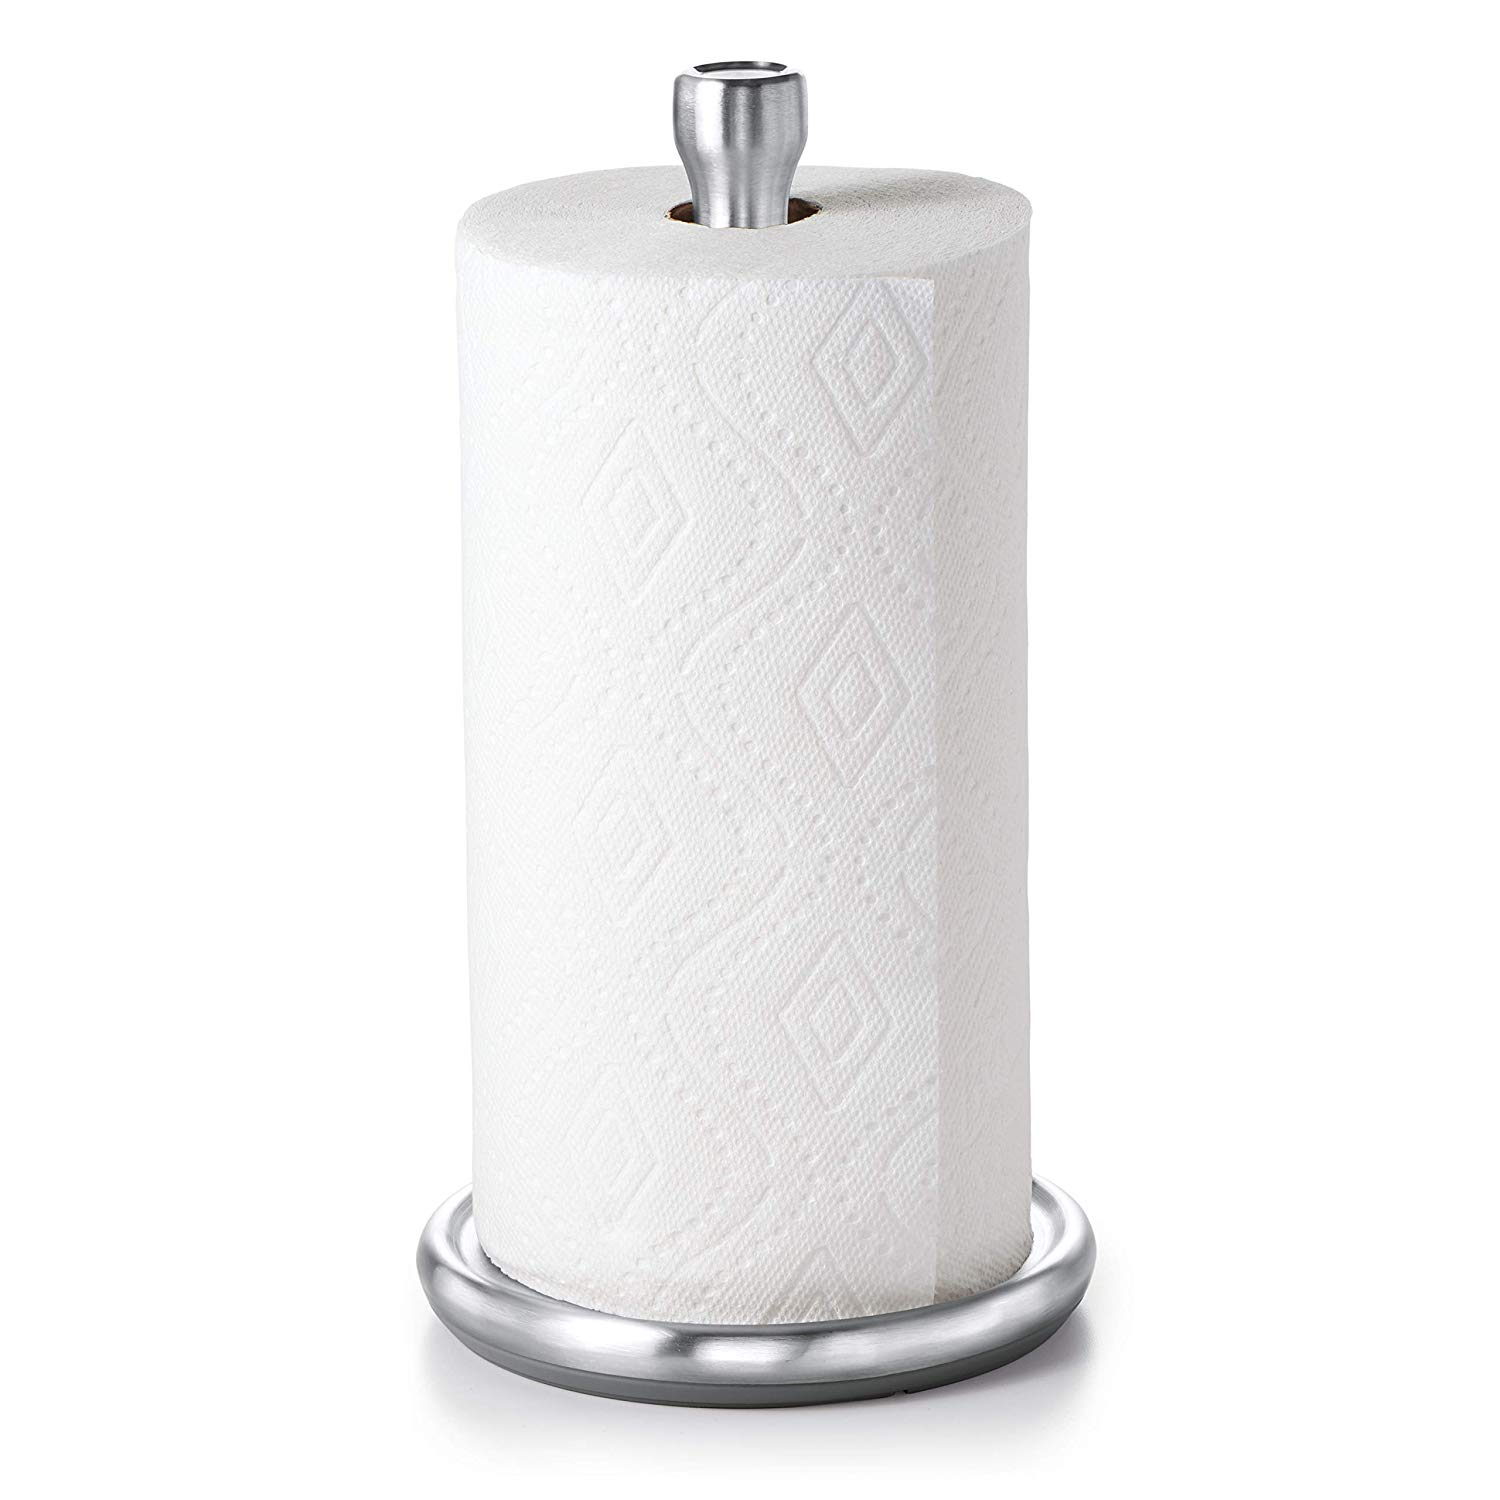 sample of the steady paper towel holder by OXO good grips